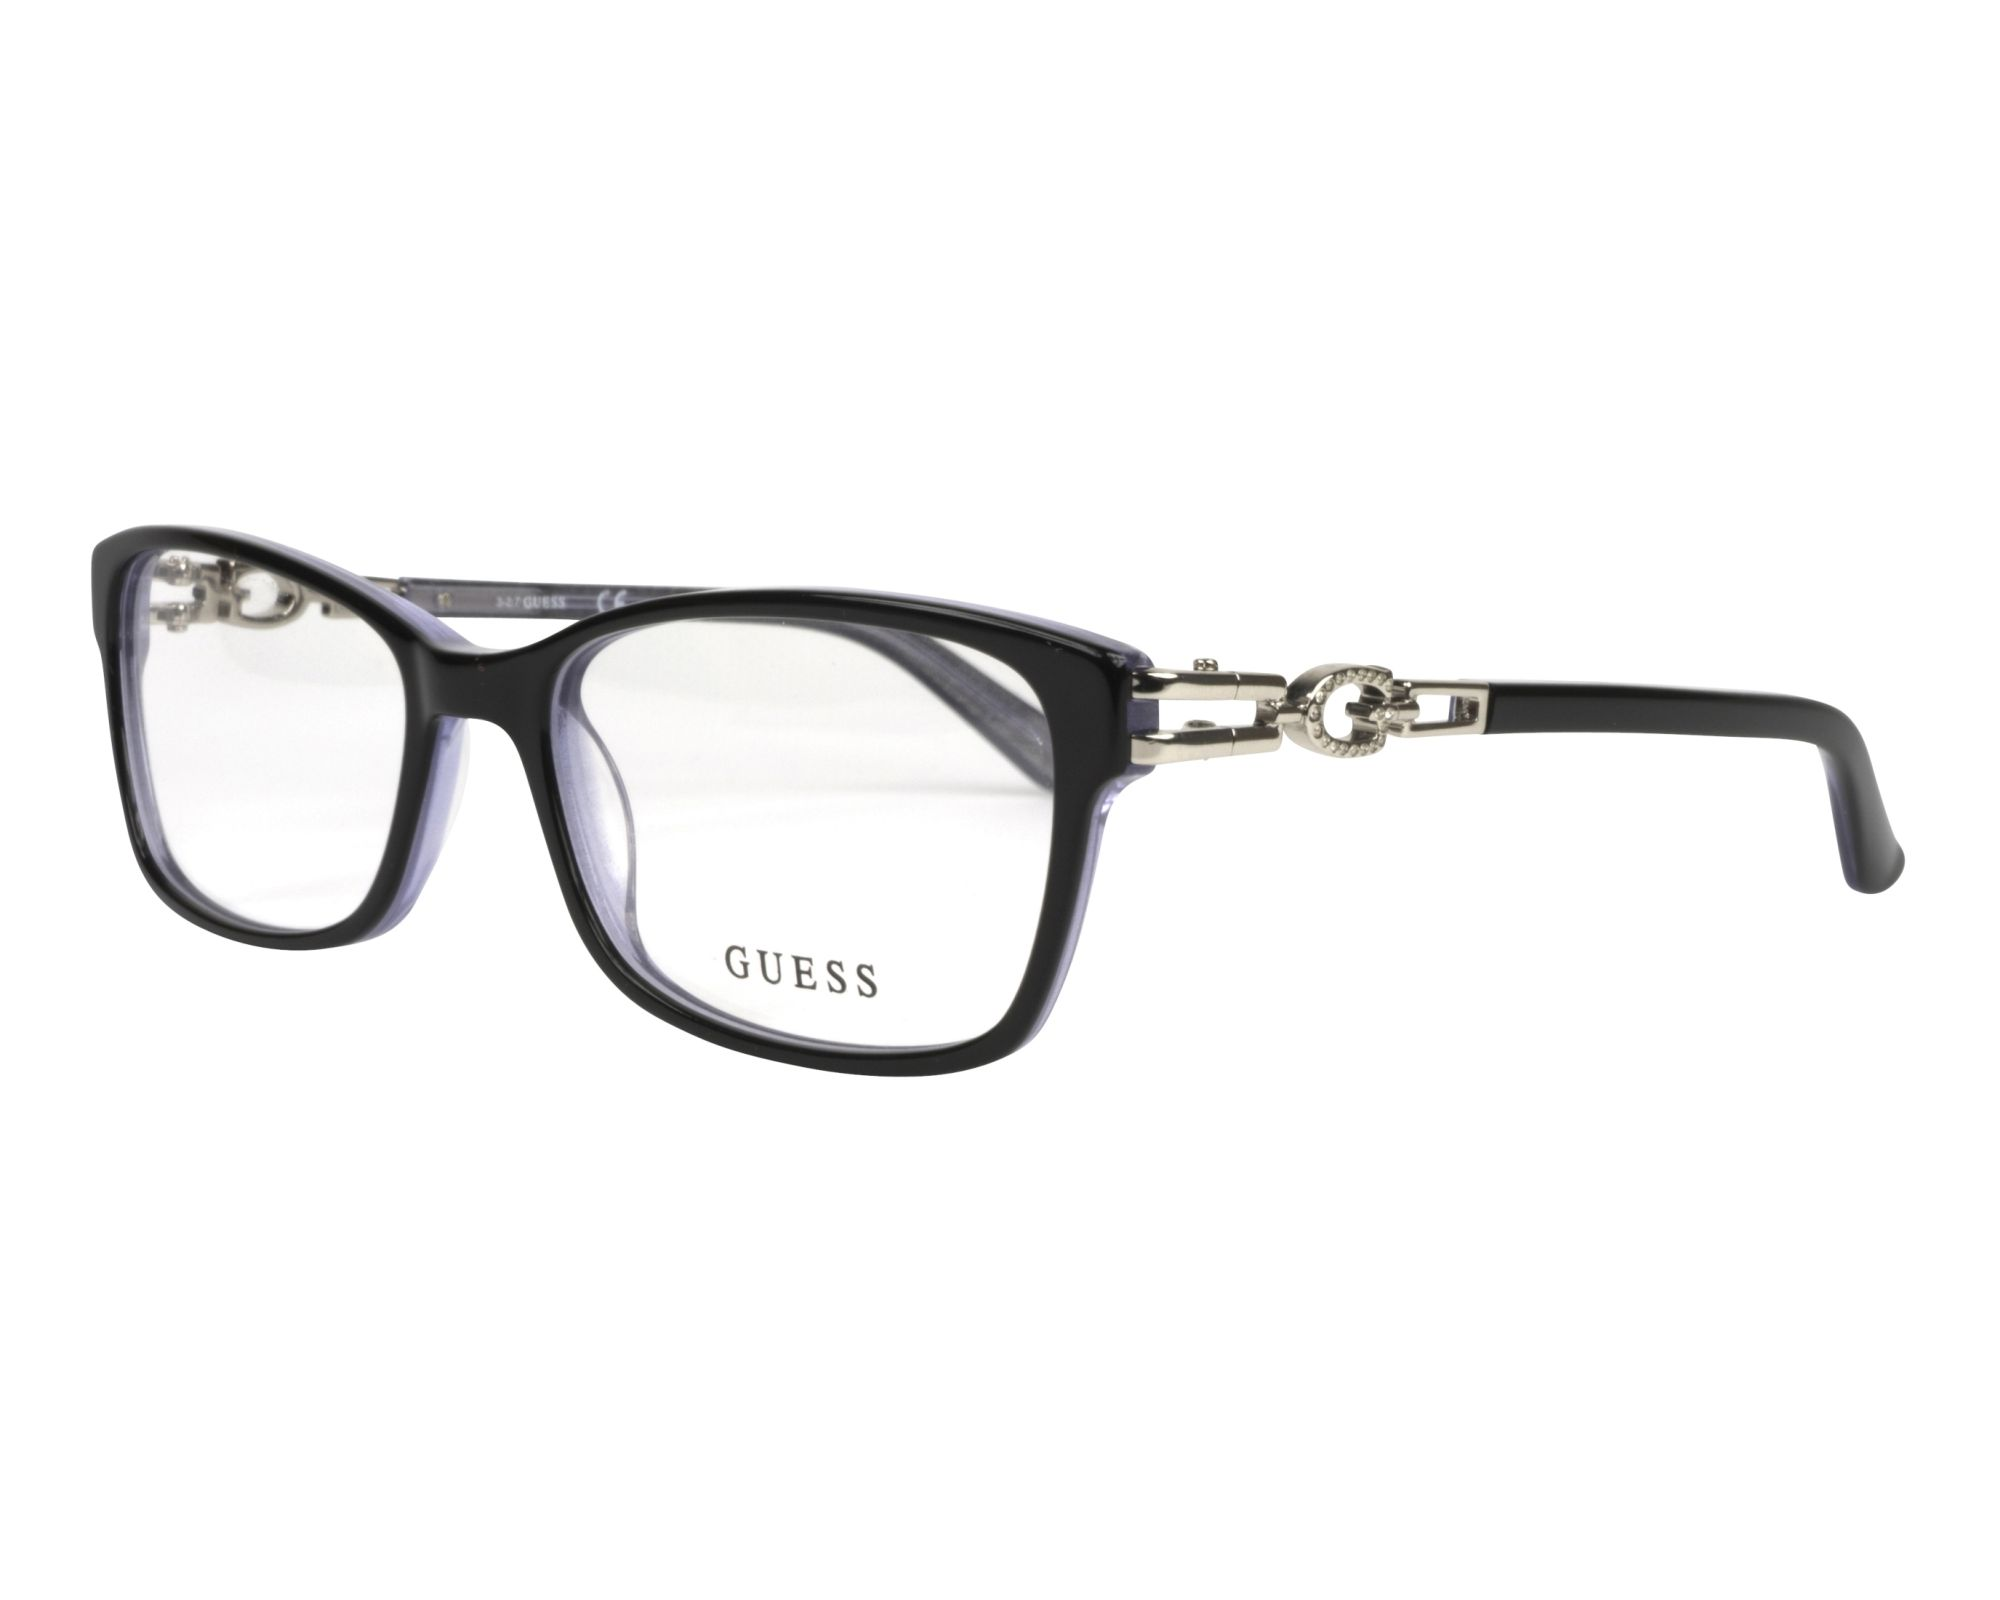 eyeglasses Guess GU-2677-V 005 50-17 Black Crystal profile view